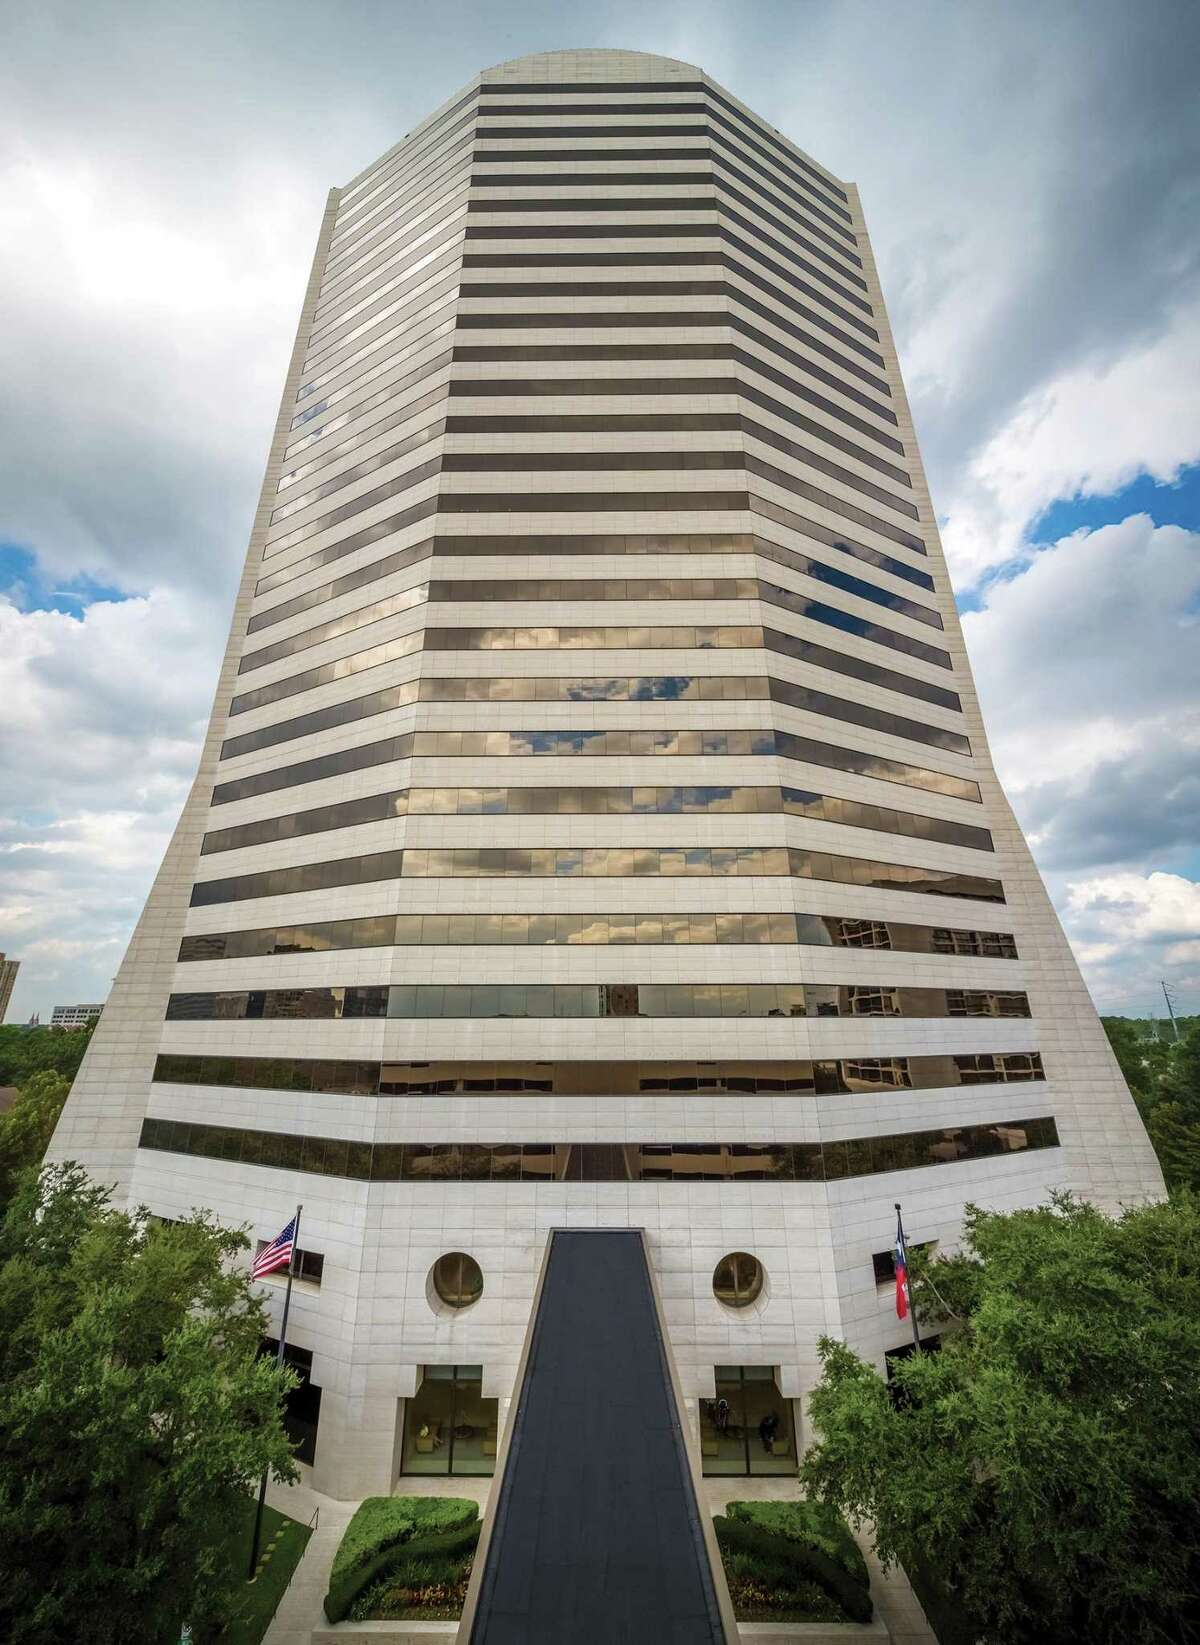 Colvill Office Propertiescompleted 117,000 square feet of lease deals at Five Post Oak Park, a 28-story office tower at 4400 Post Oak Parkway, in 2018. The deals follow a renovation of the 567,000-square-foot building by owner and manager Shorenstein Properties in 2017.